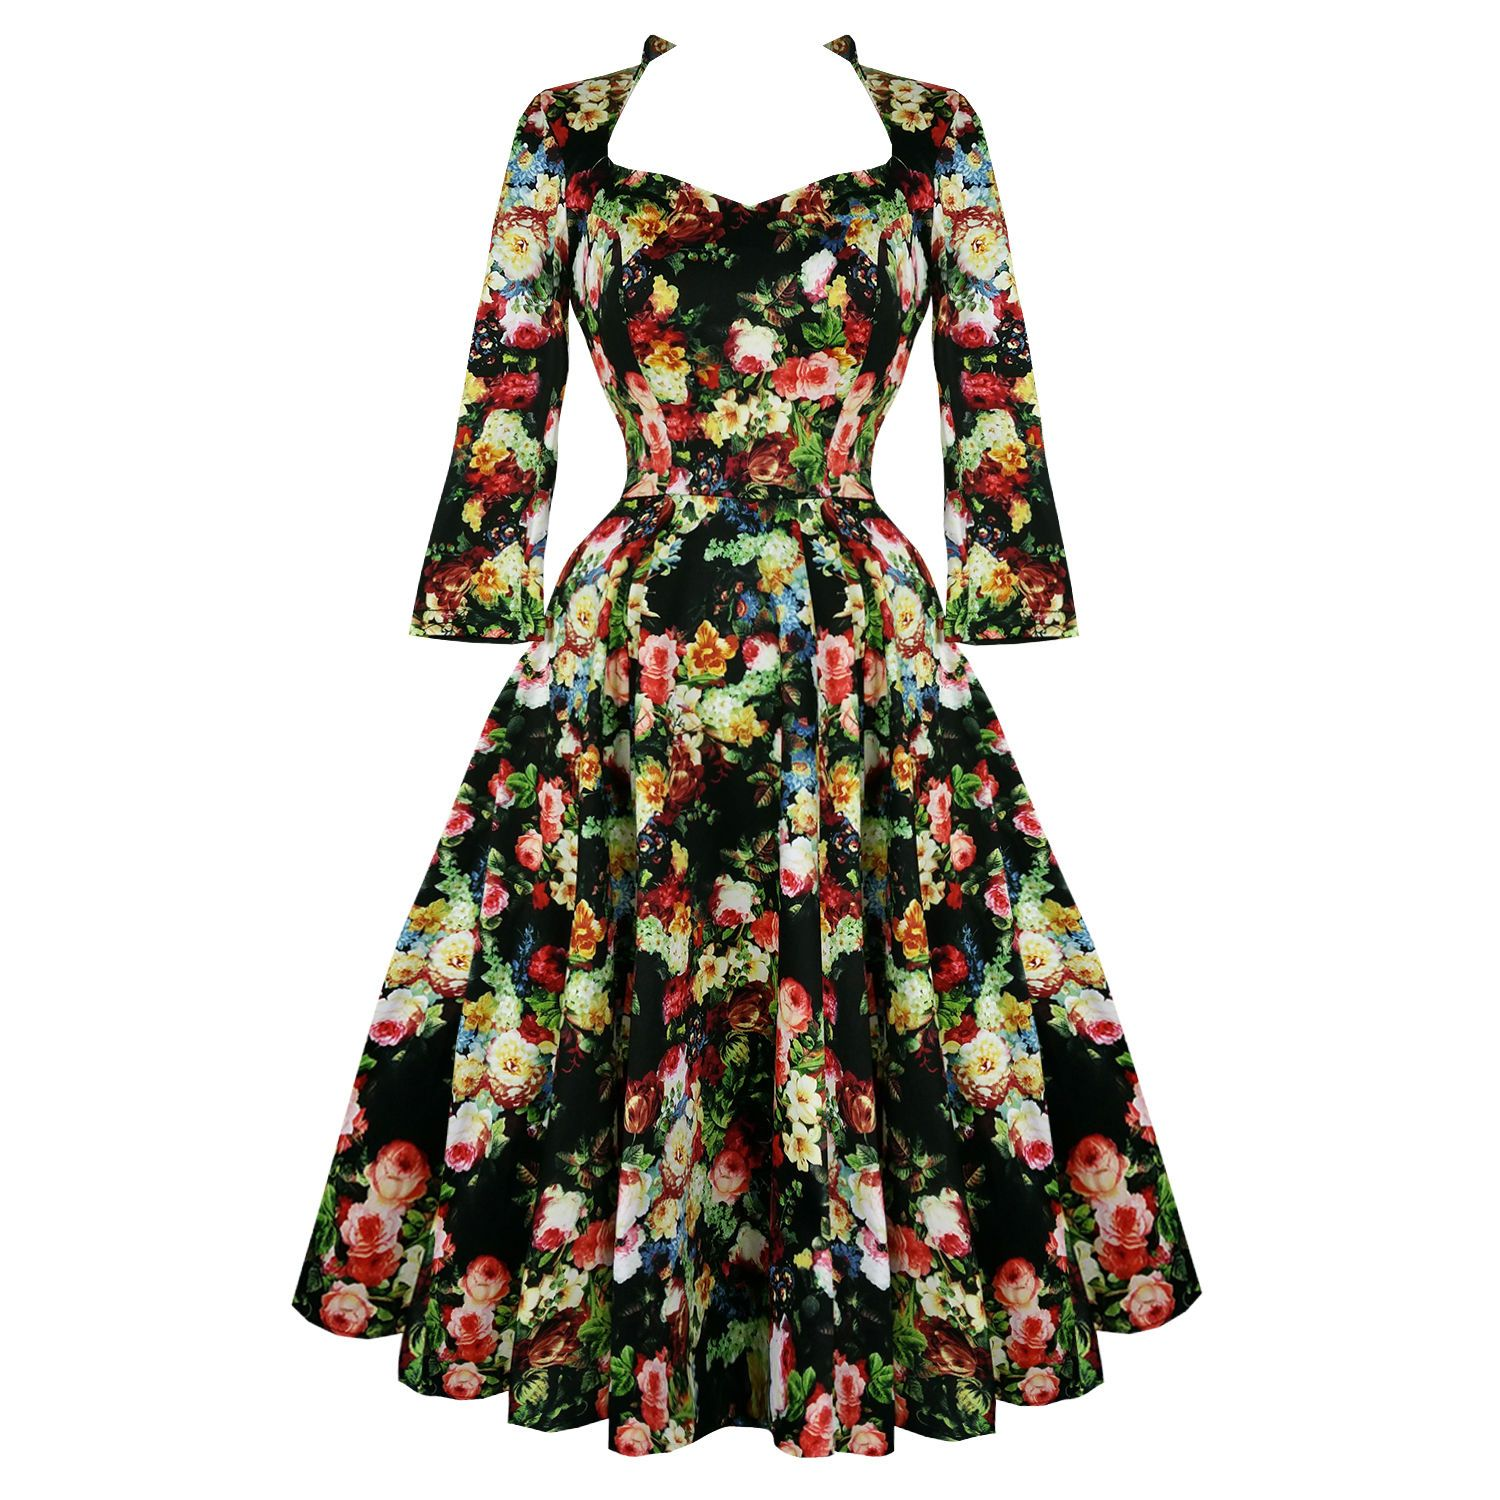 Details About Hearts Roses London Antique Rose Floral Chintz Retro 1950s Flared Tea Dress Uk Platya Moda